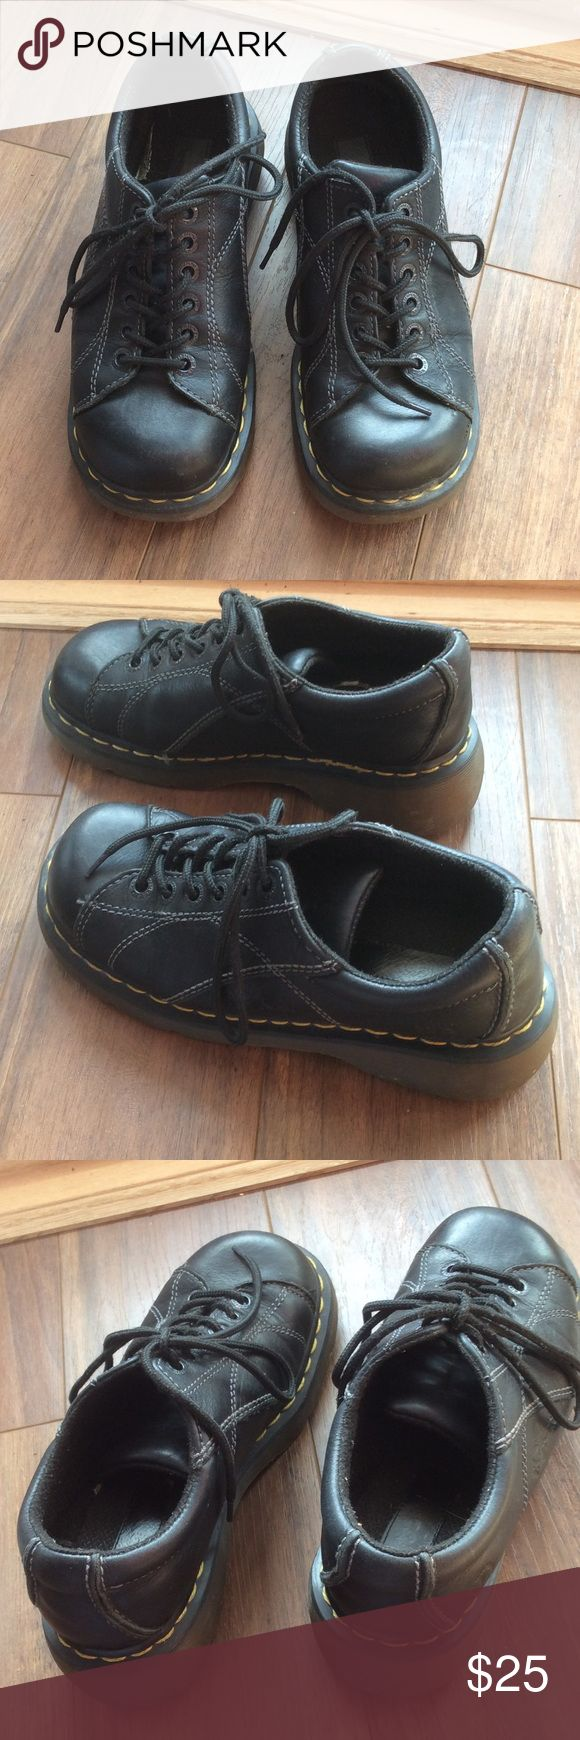 Dr Marten size 39 Good pre owned condition! Really comfortable. Size label says U.K 6, Euro 39, US 8. They run like an 8 1/2 U.S. Dr. Martens Shoes Flats & Loafers